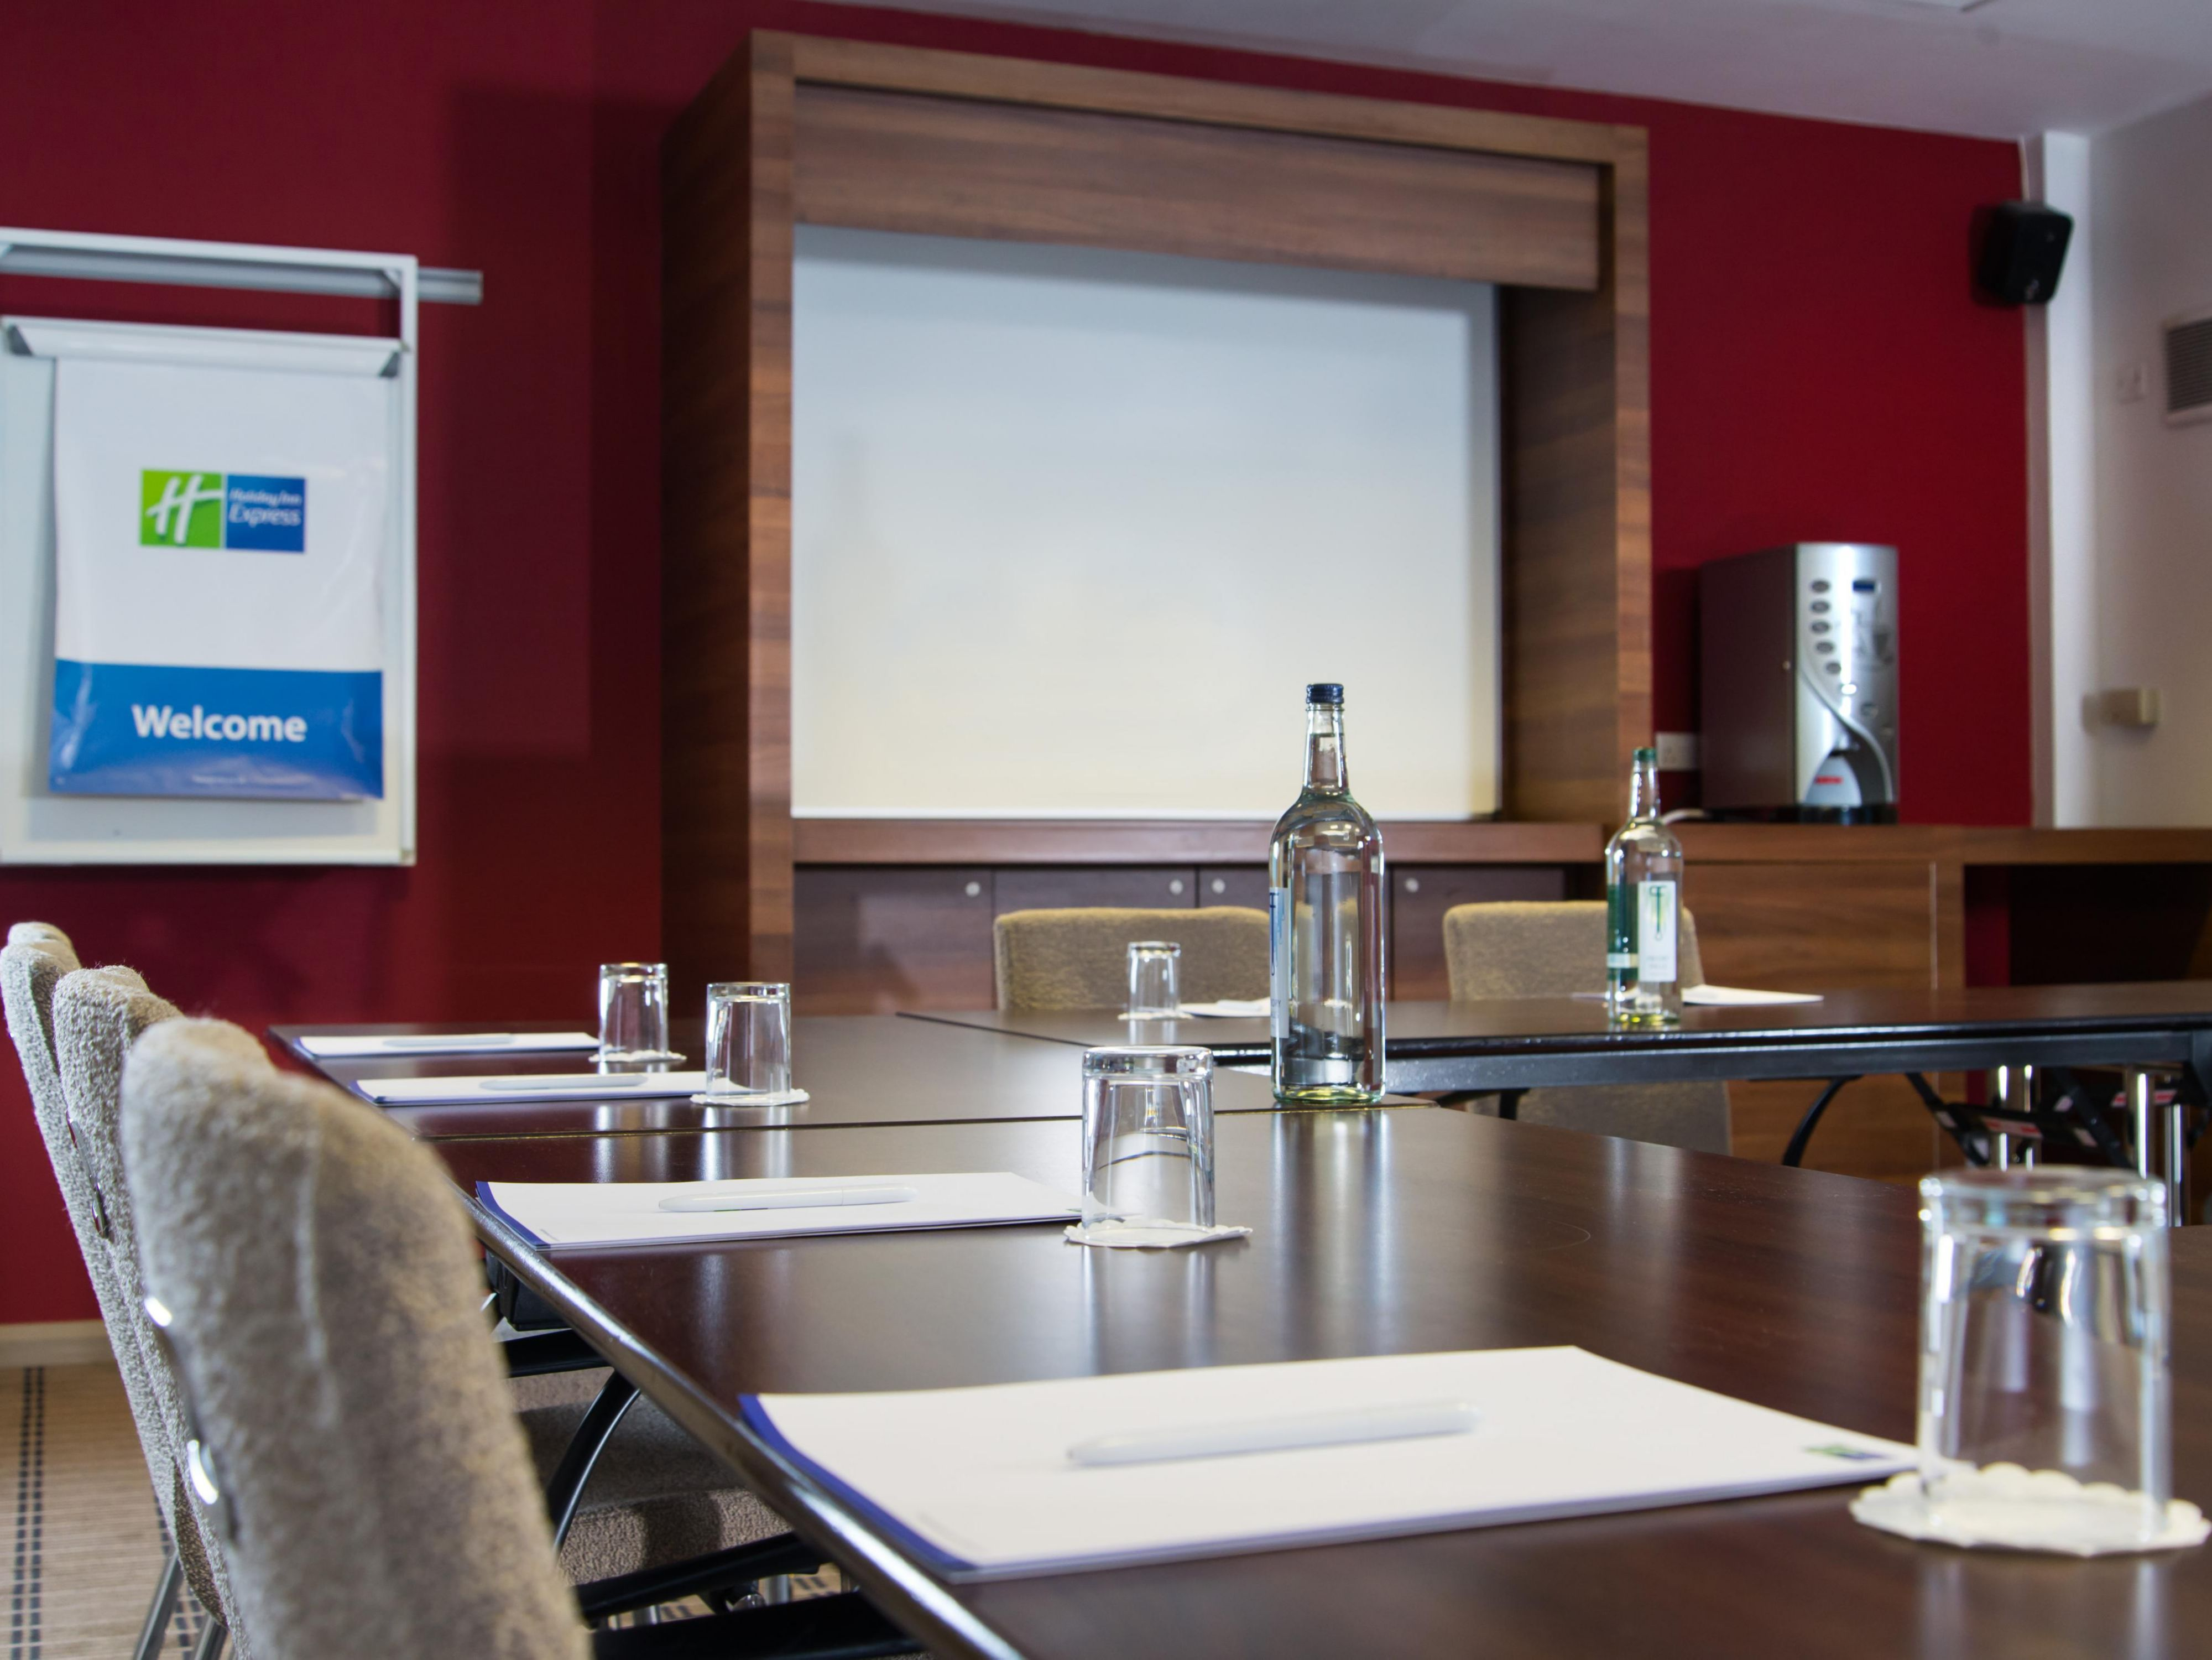 Holding a meeting in Leeds? Call us for great value delegate rates